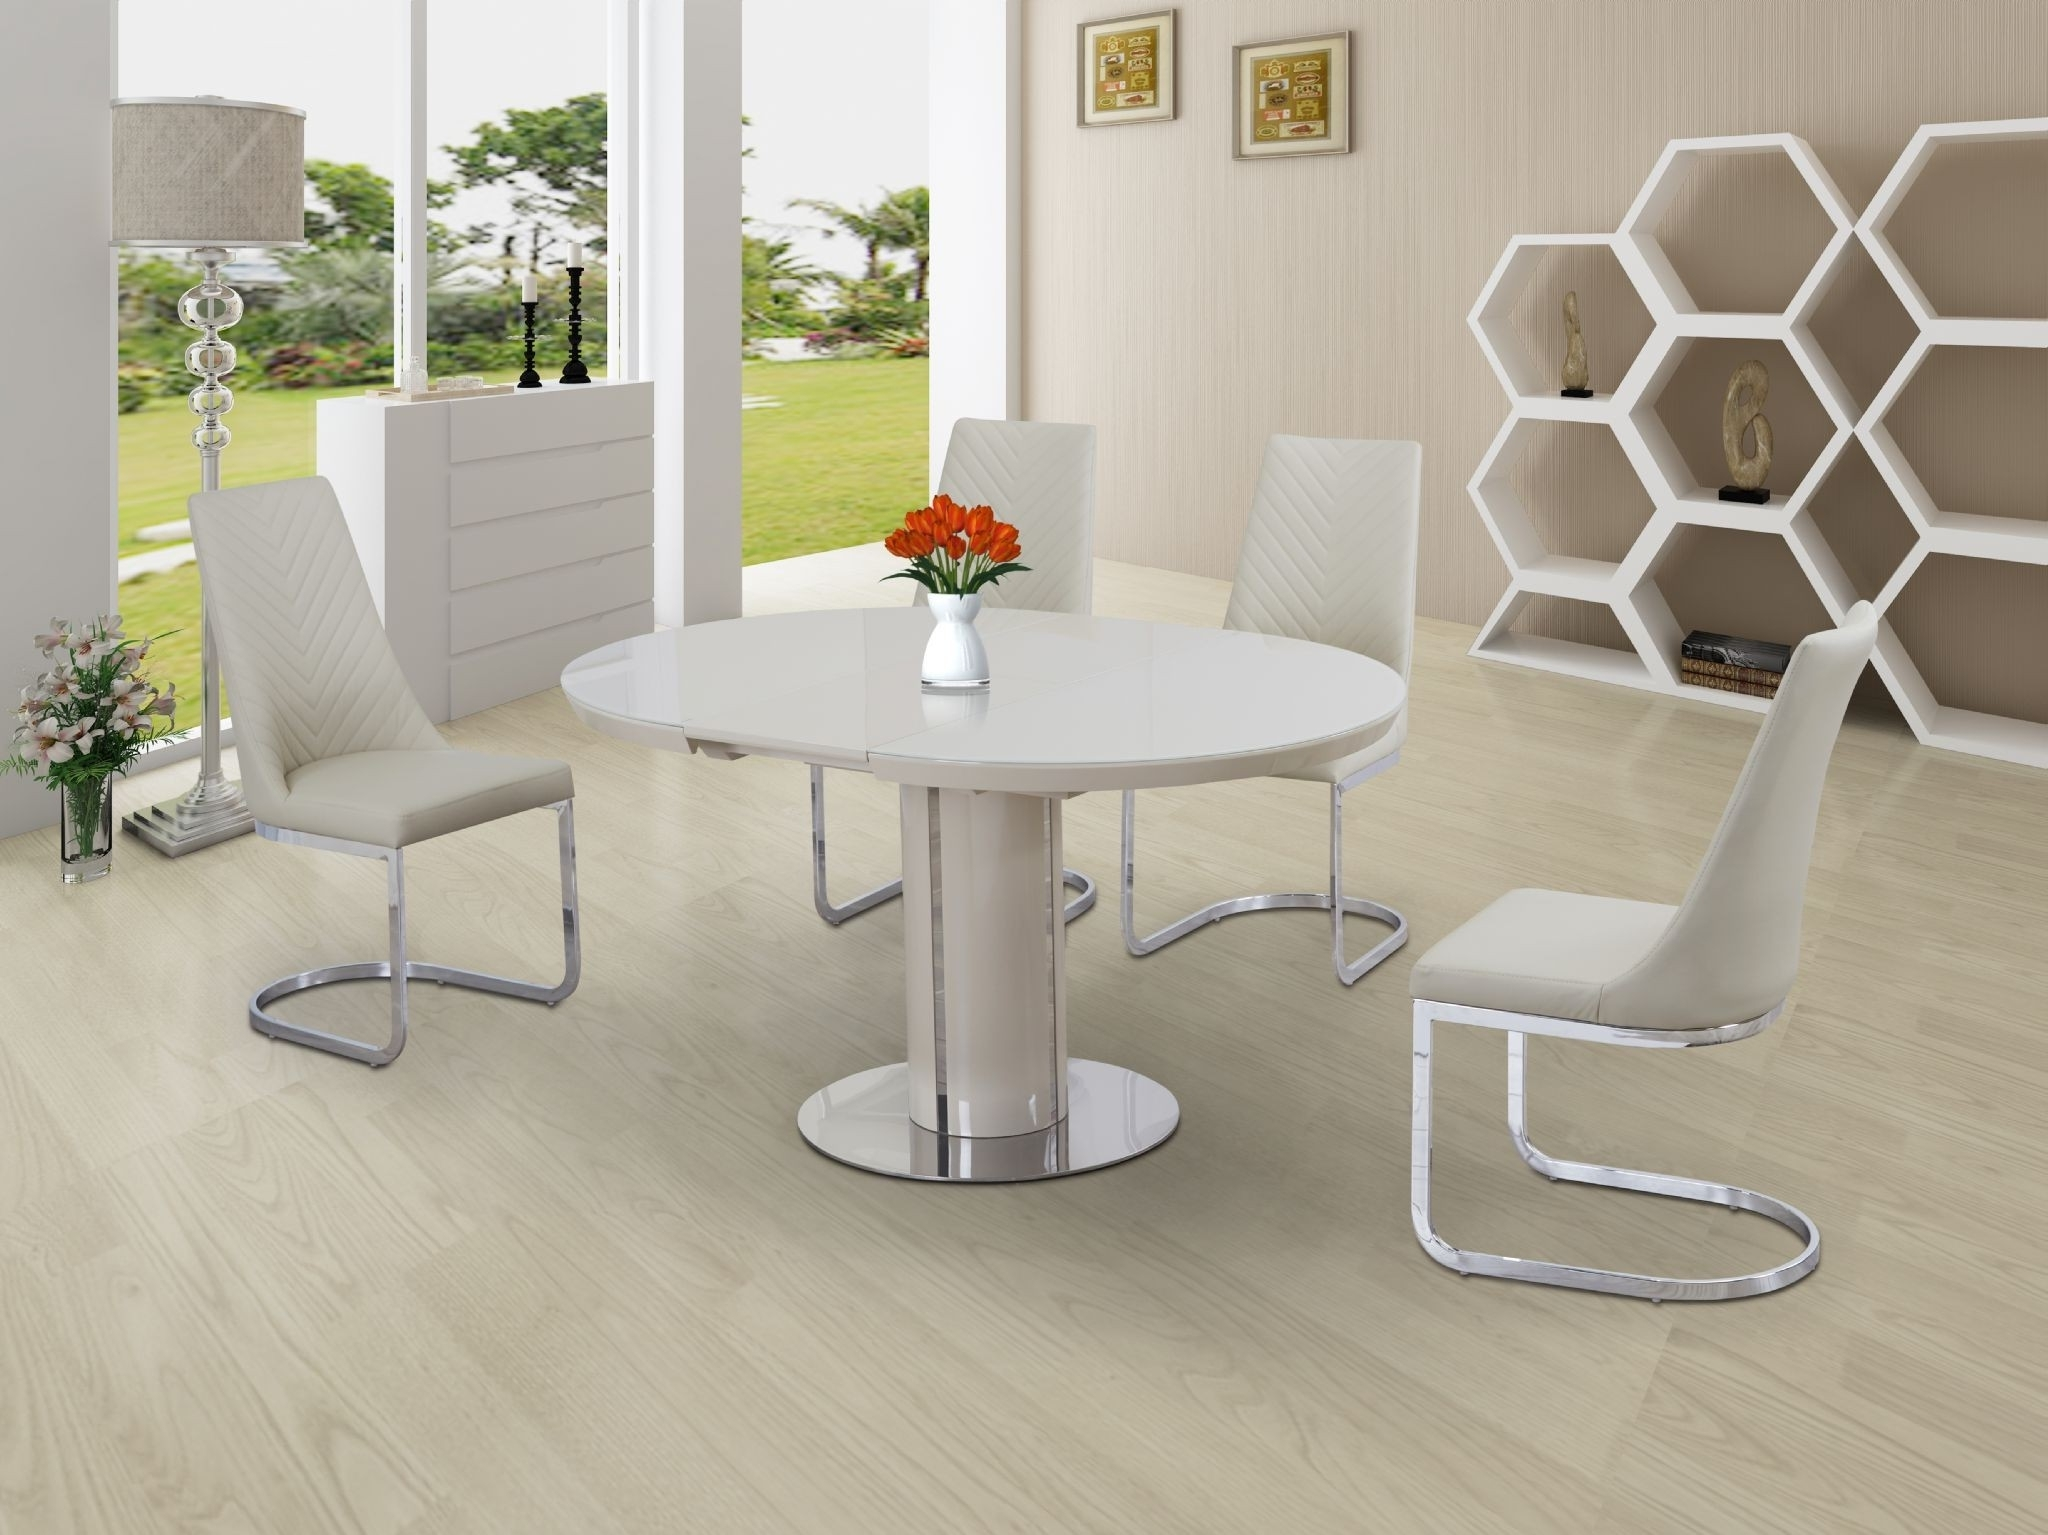 Most Recently Released Buy Annular Cream High Gloss Extending Dining Table Pertaining To Large White Gloss Dining Tables (View 5 of 25)